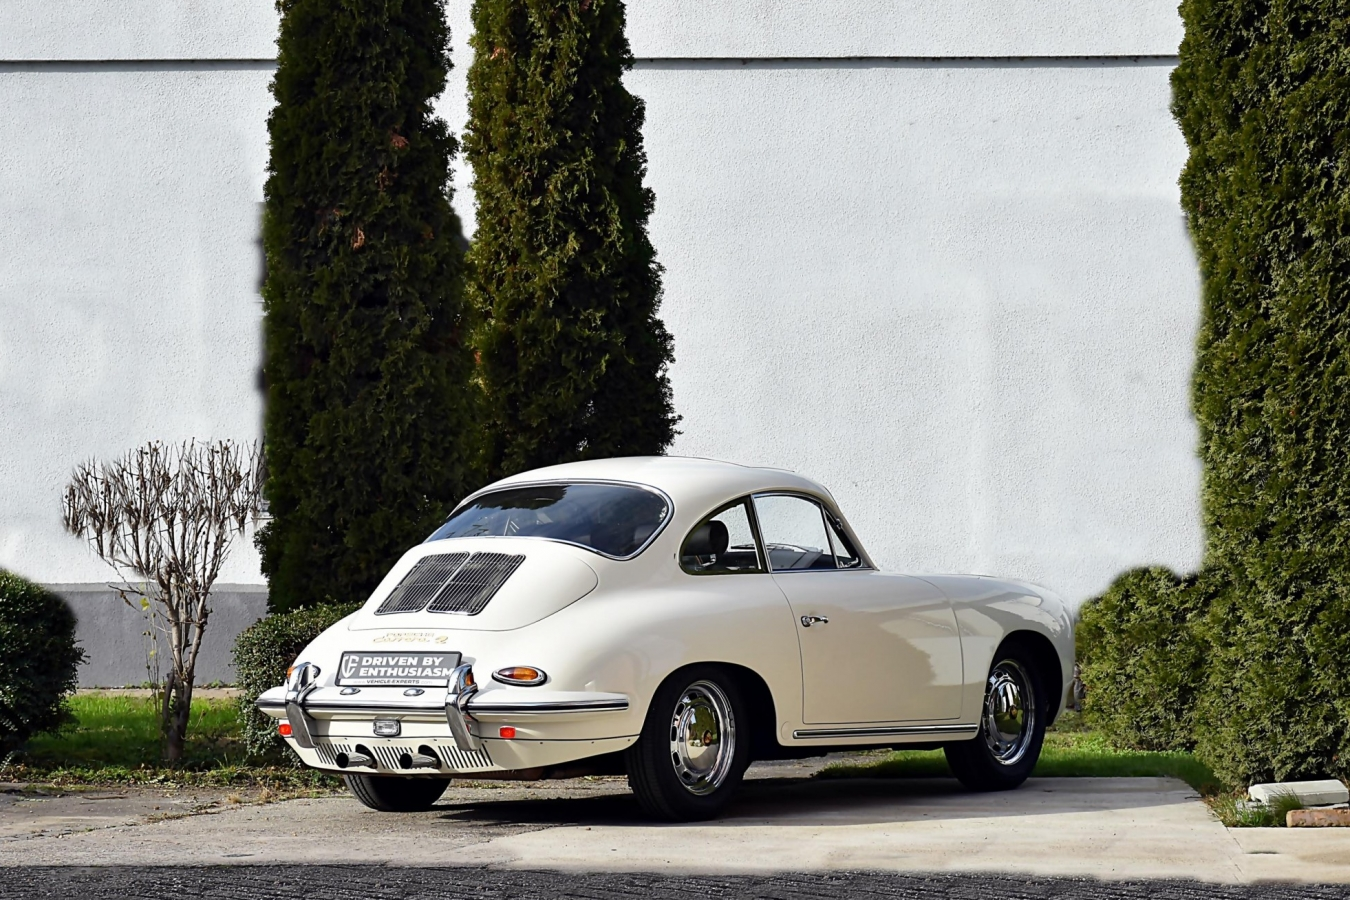 Porsche 356 C 2000 GS Carrera 2 Coupè 1